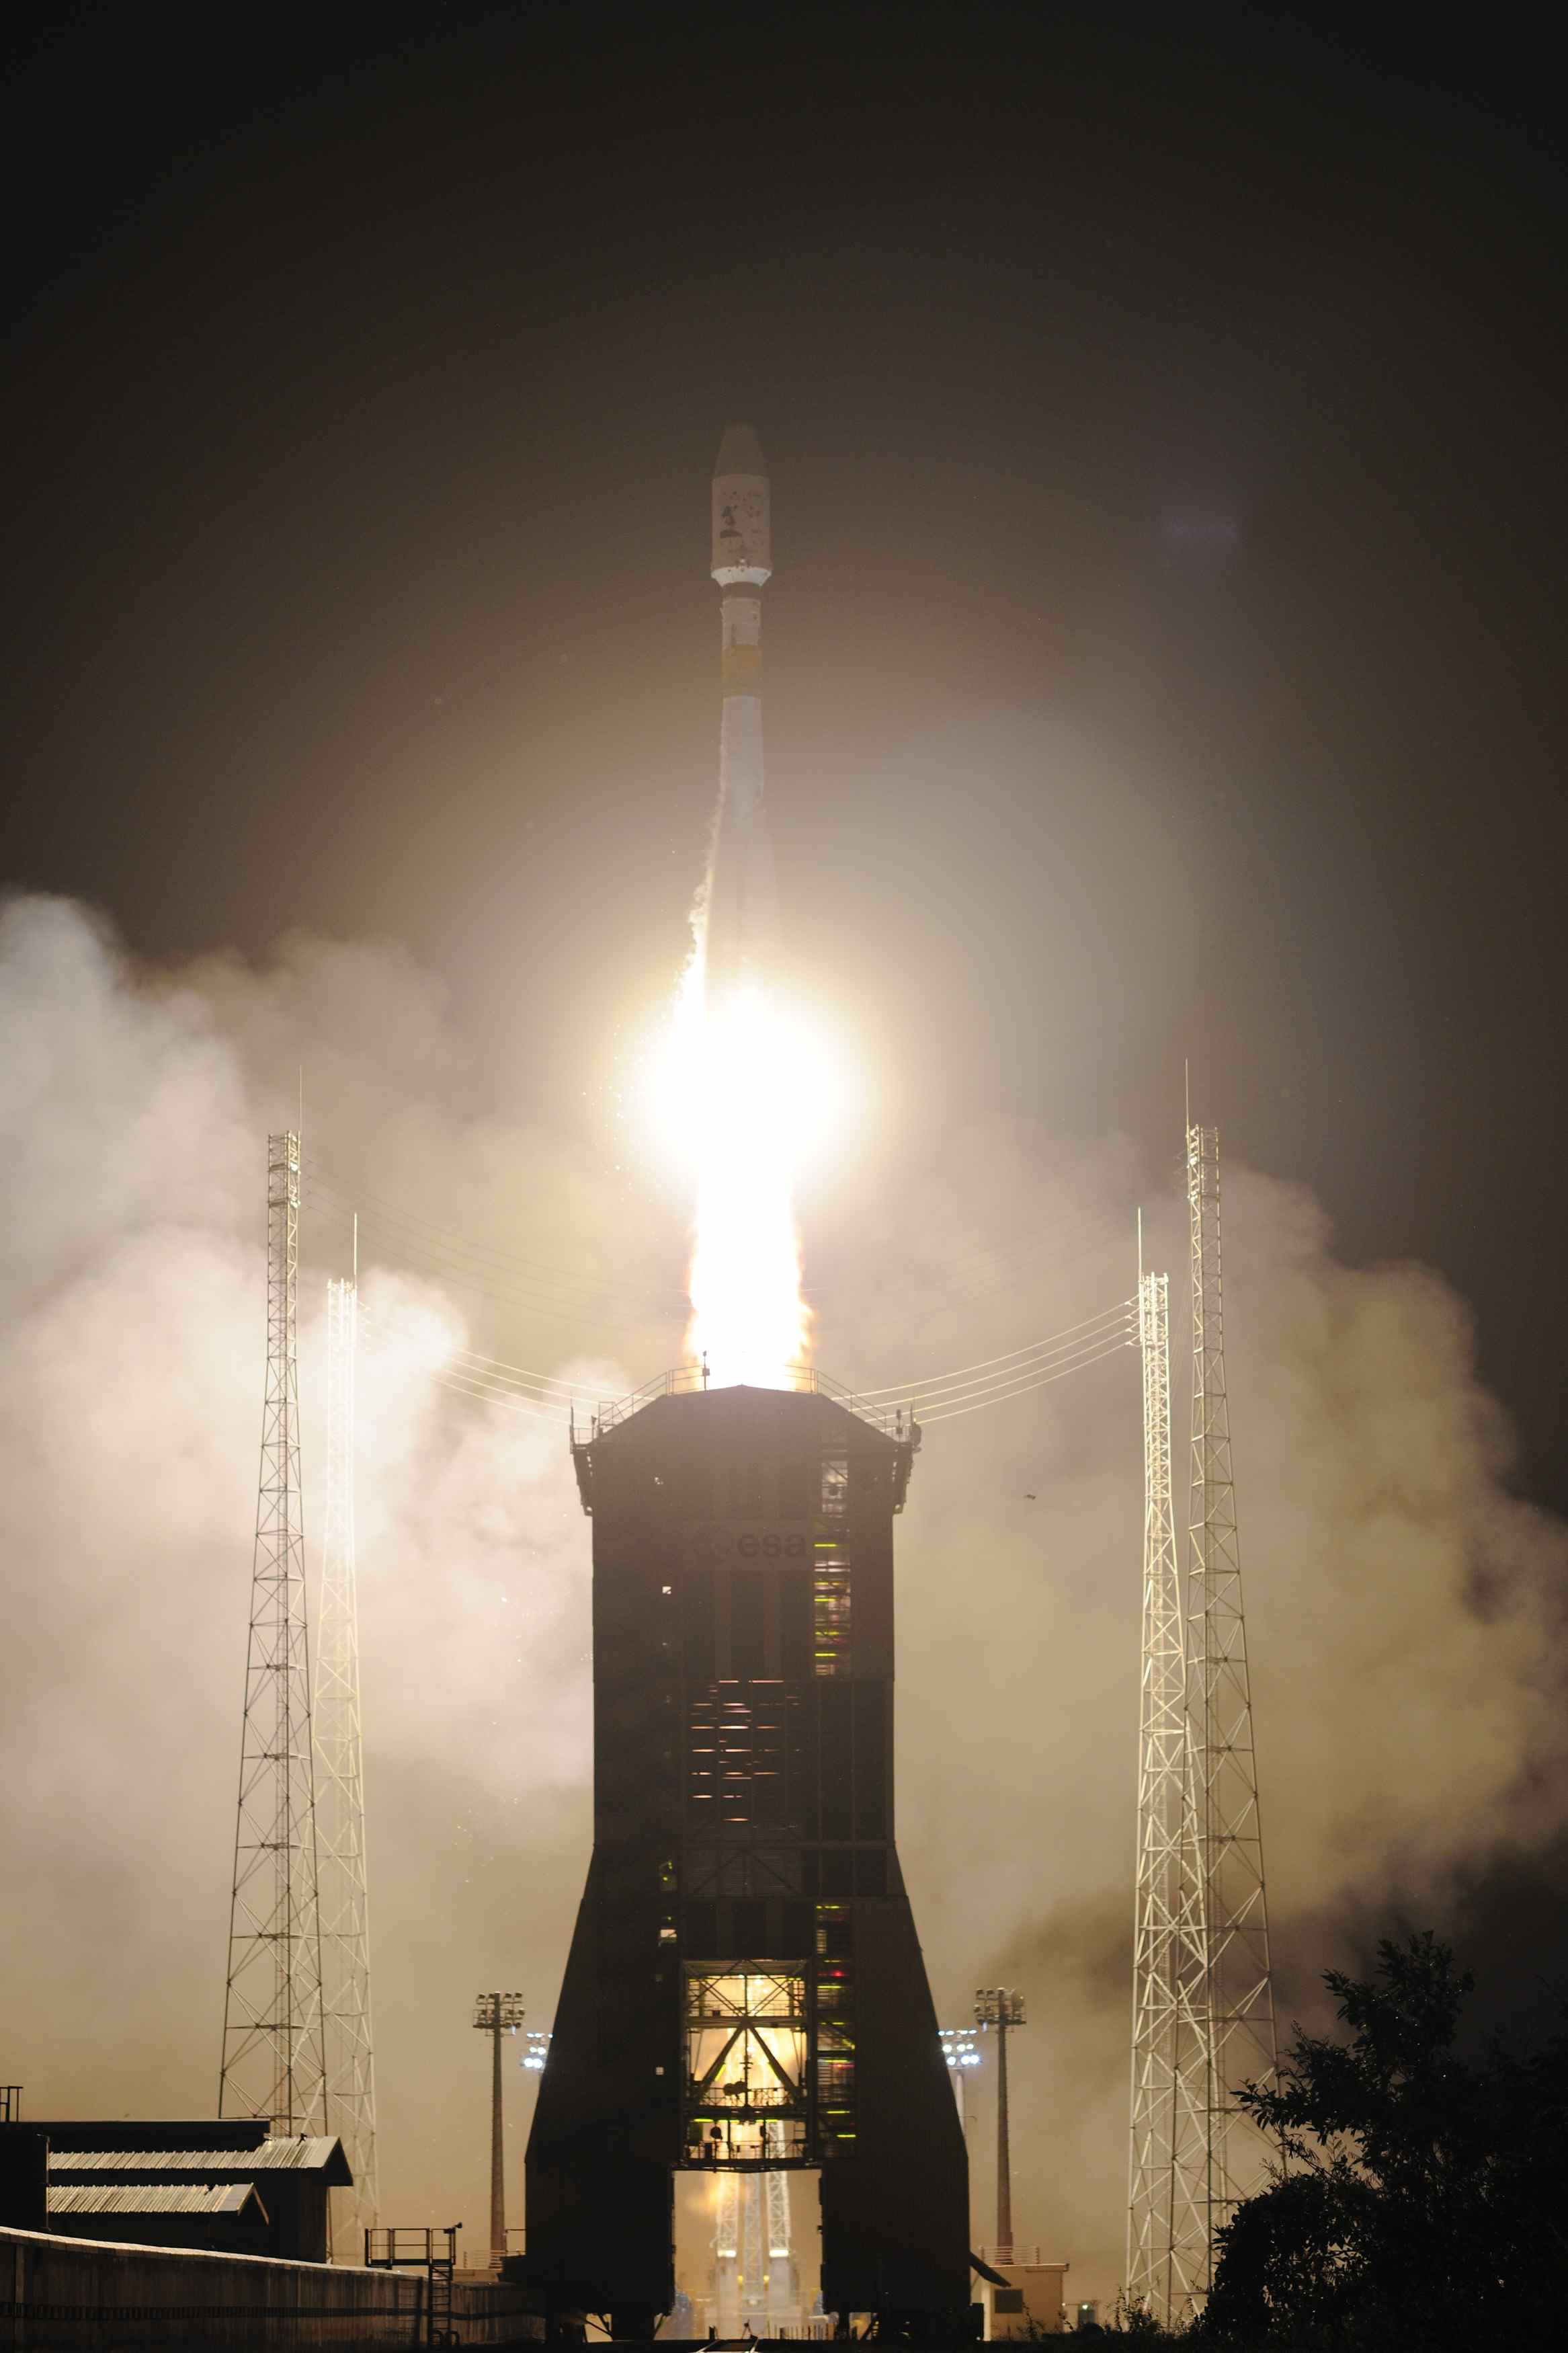 Europe Launches Gaia, Its Billion-Star Surveyor